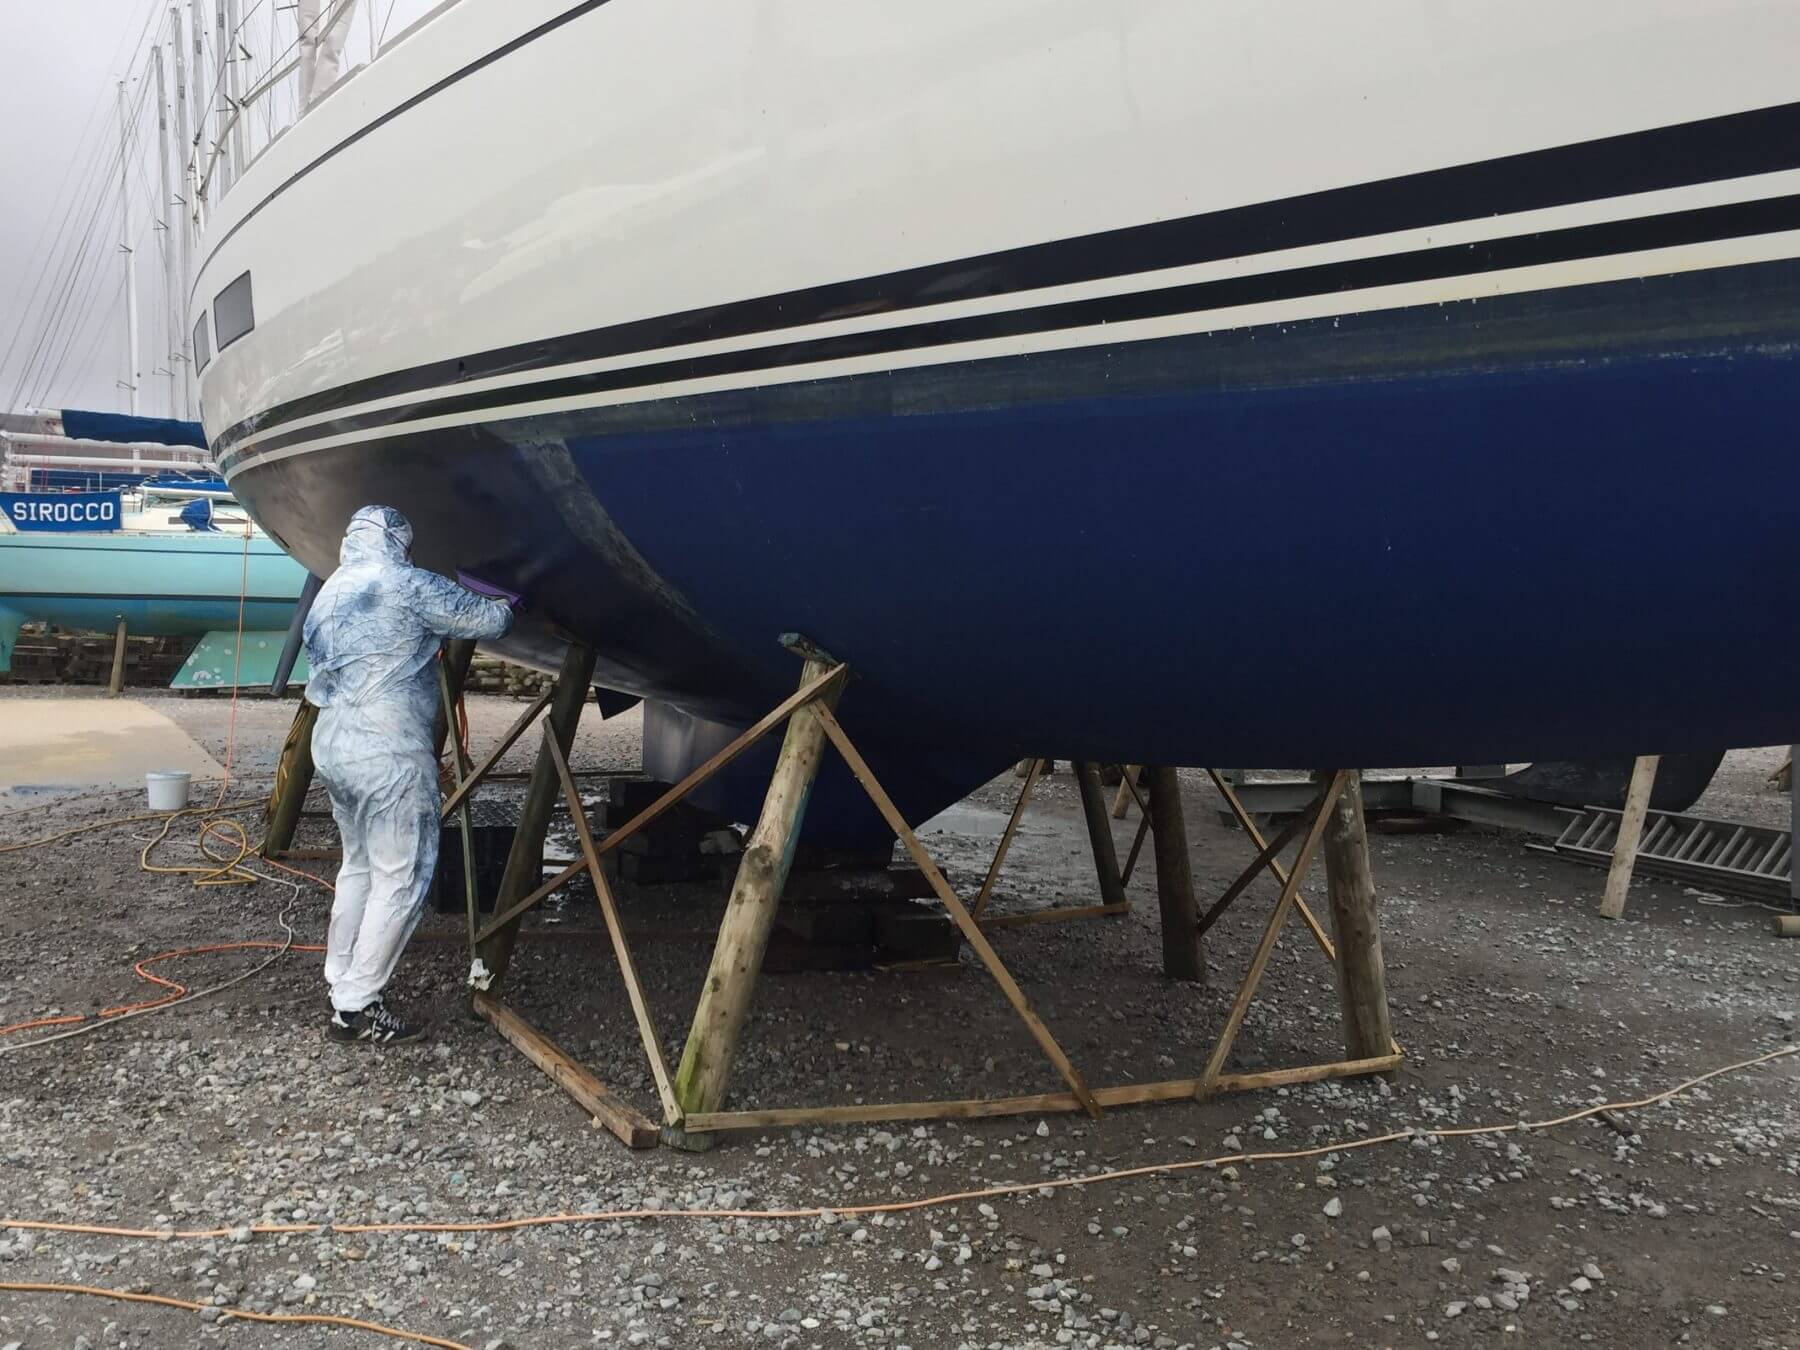 Hull preparation and antifouling